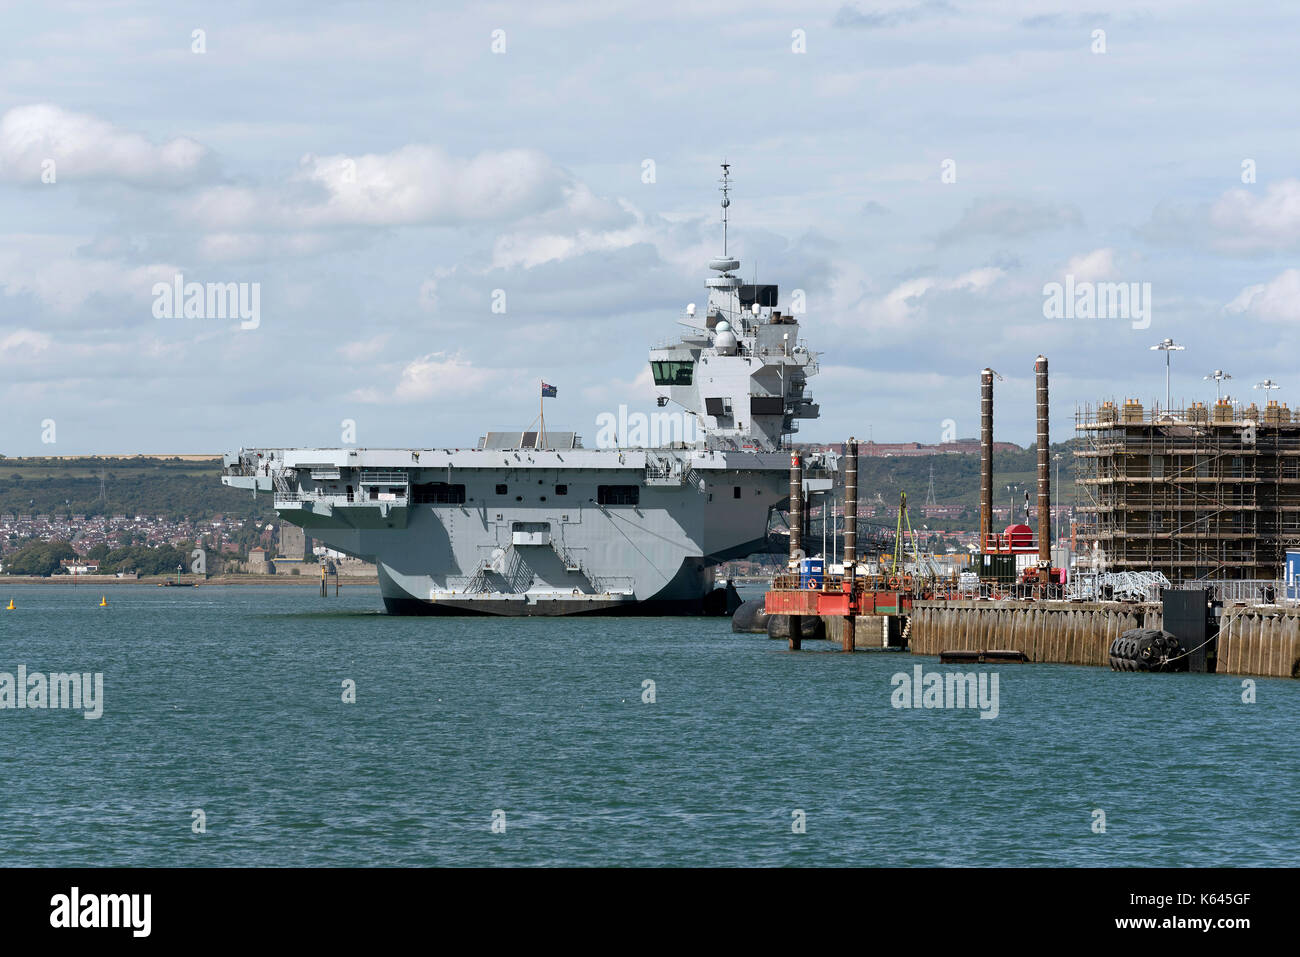 Portsmouth England UK.Royal Navy Dockyard with aircraft carrier HMS Queen Elizabeth alongside the Princess Royal jetty. August 2017. - Stock Image